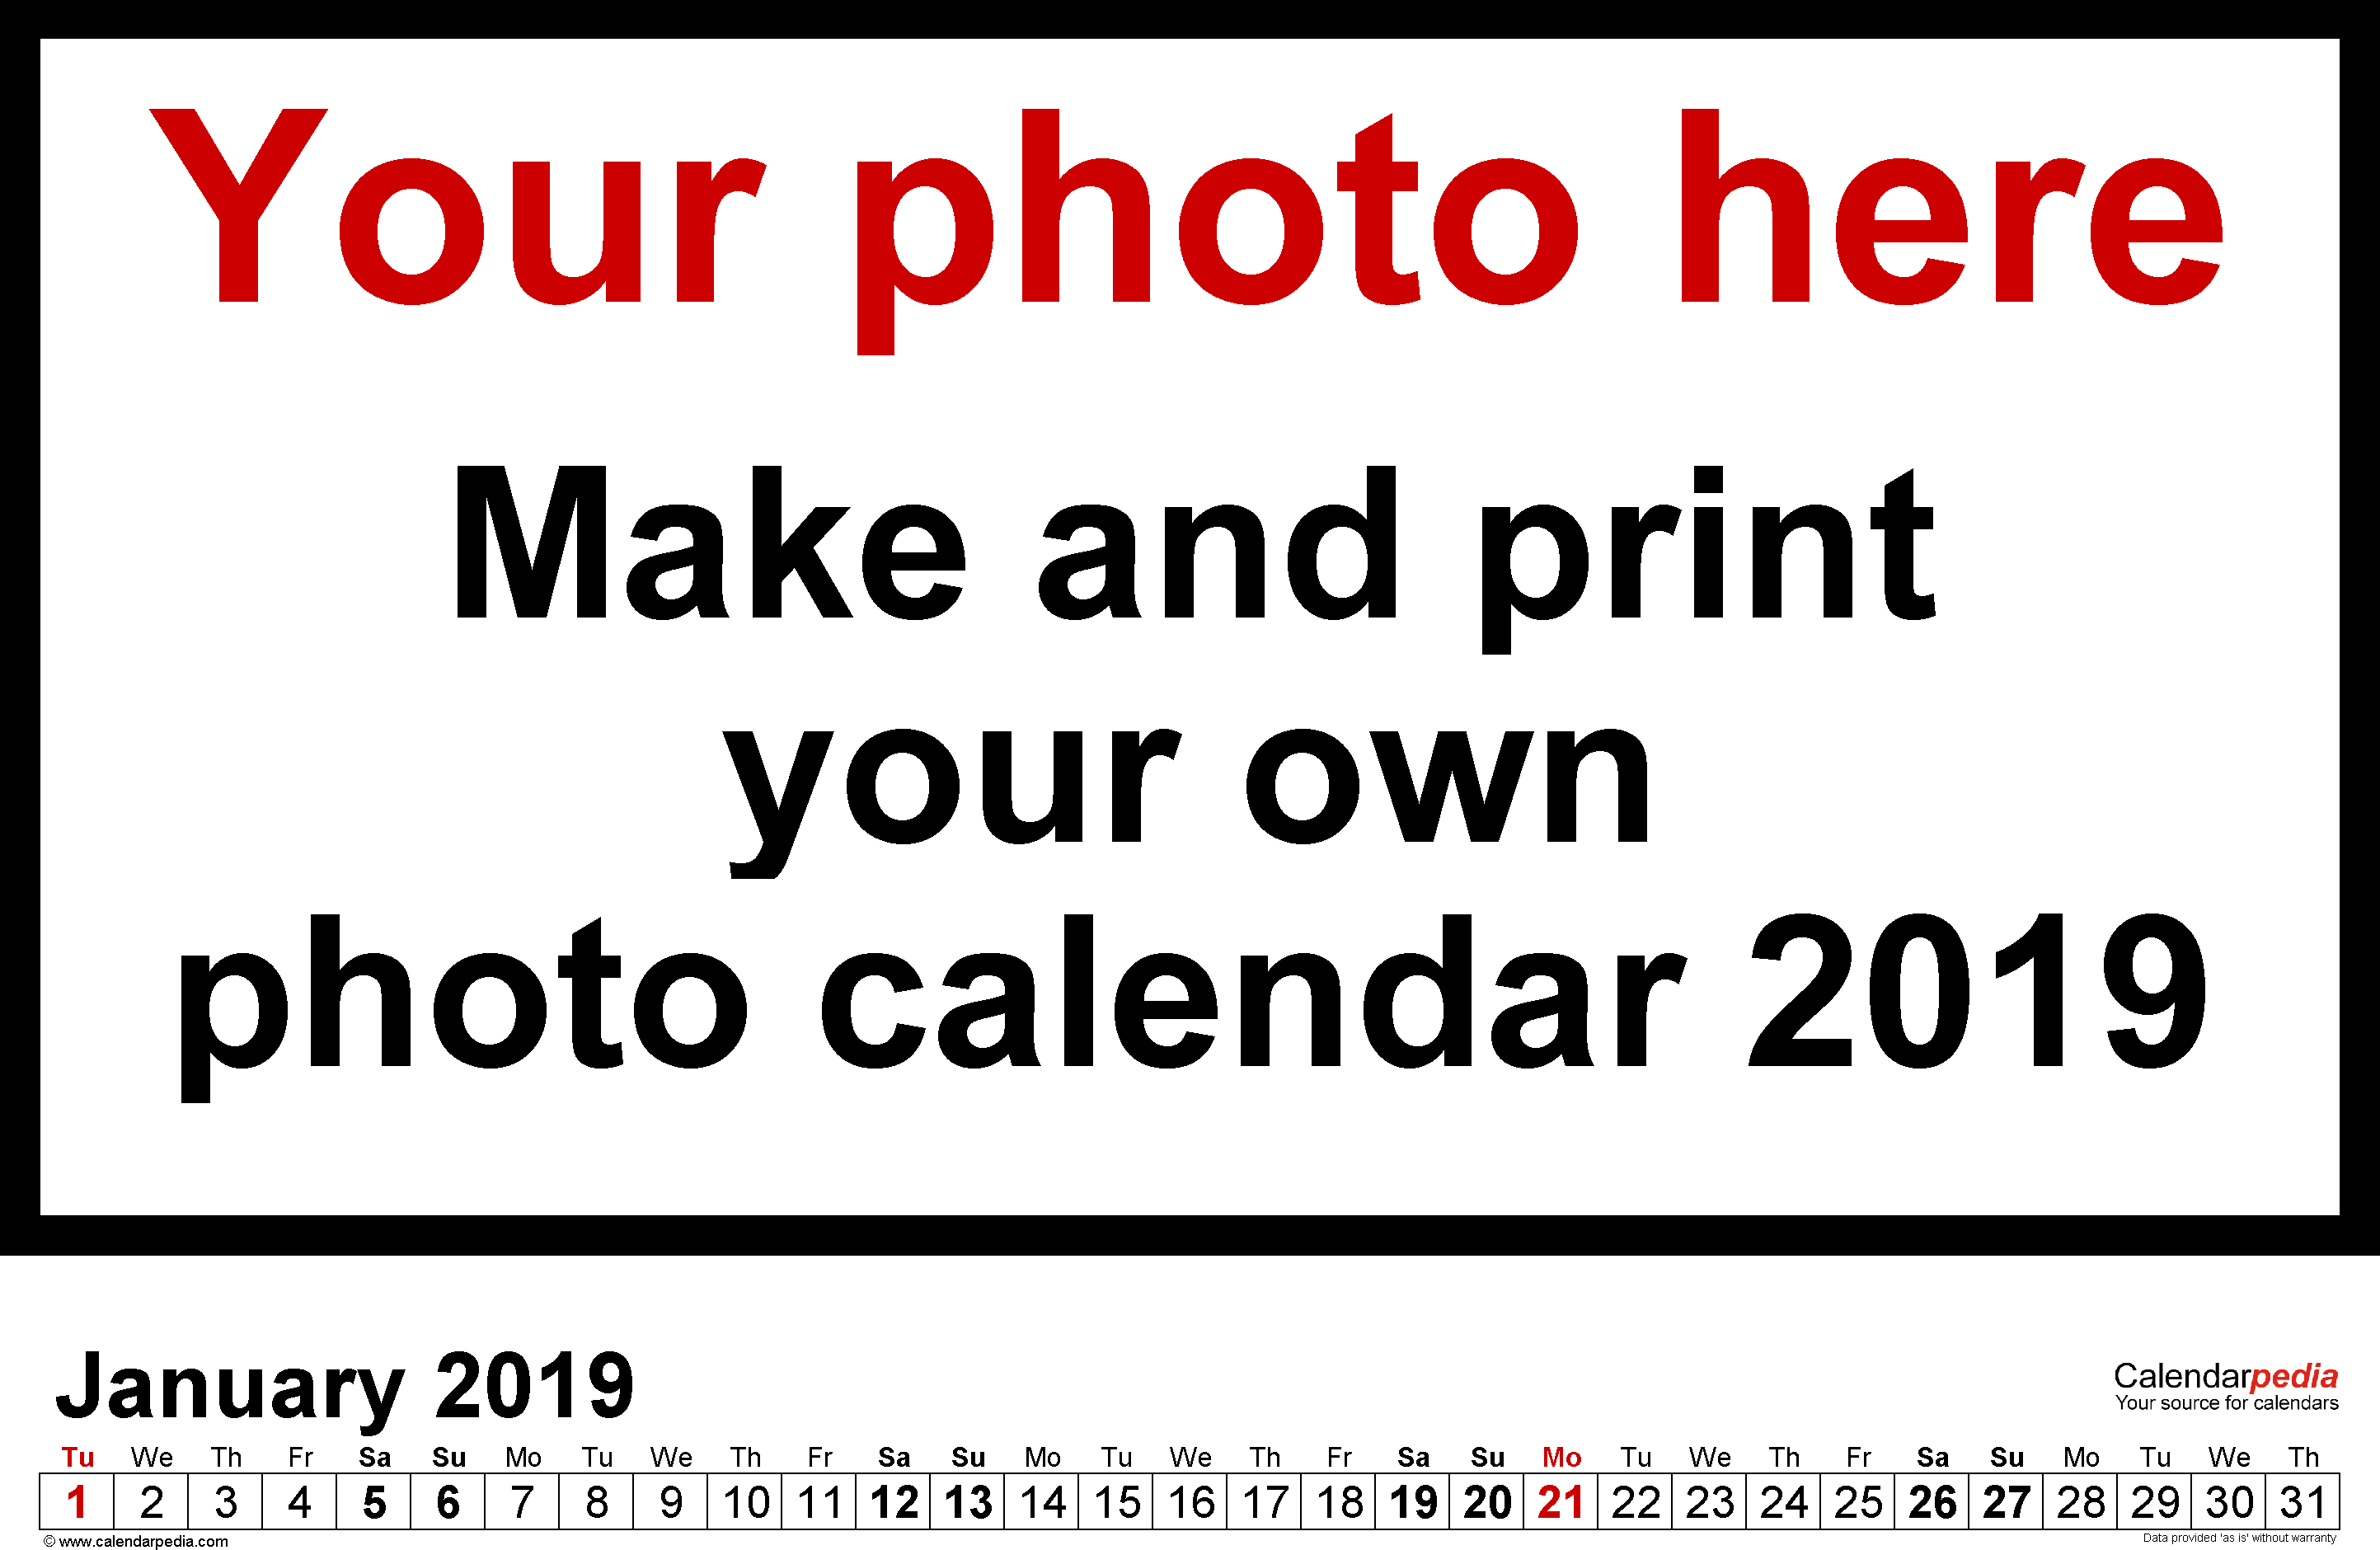 photo calendar 2019 free printable word templates